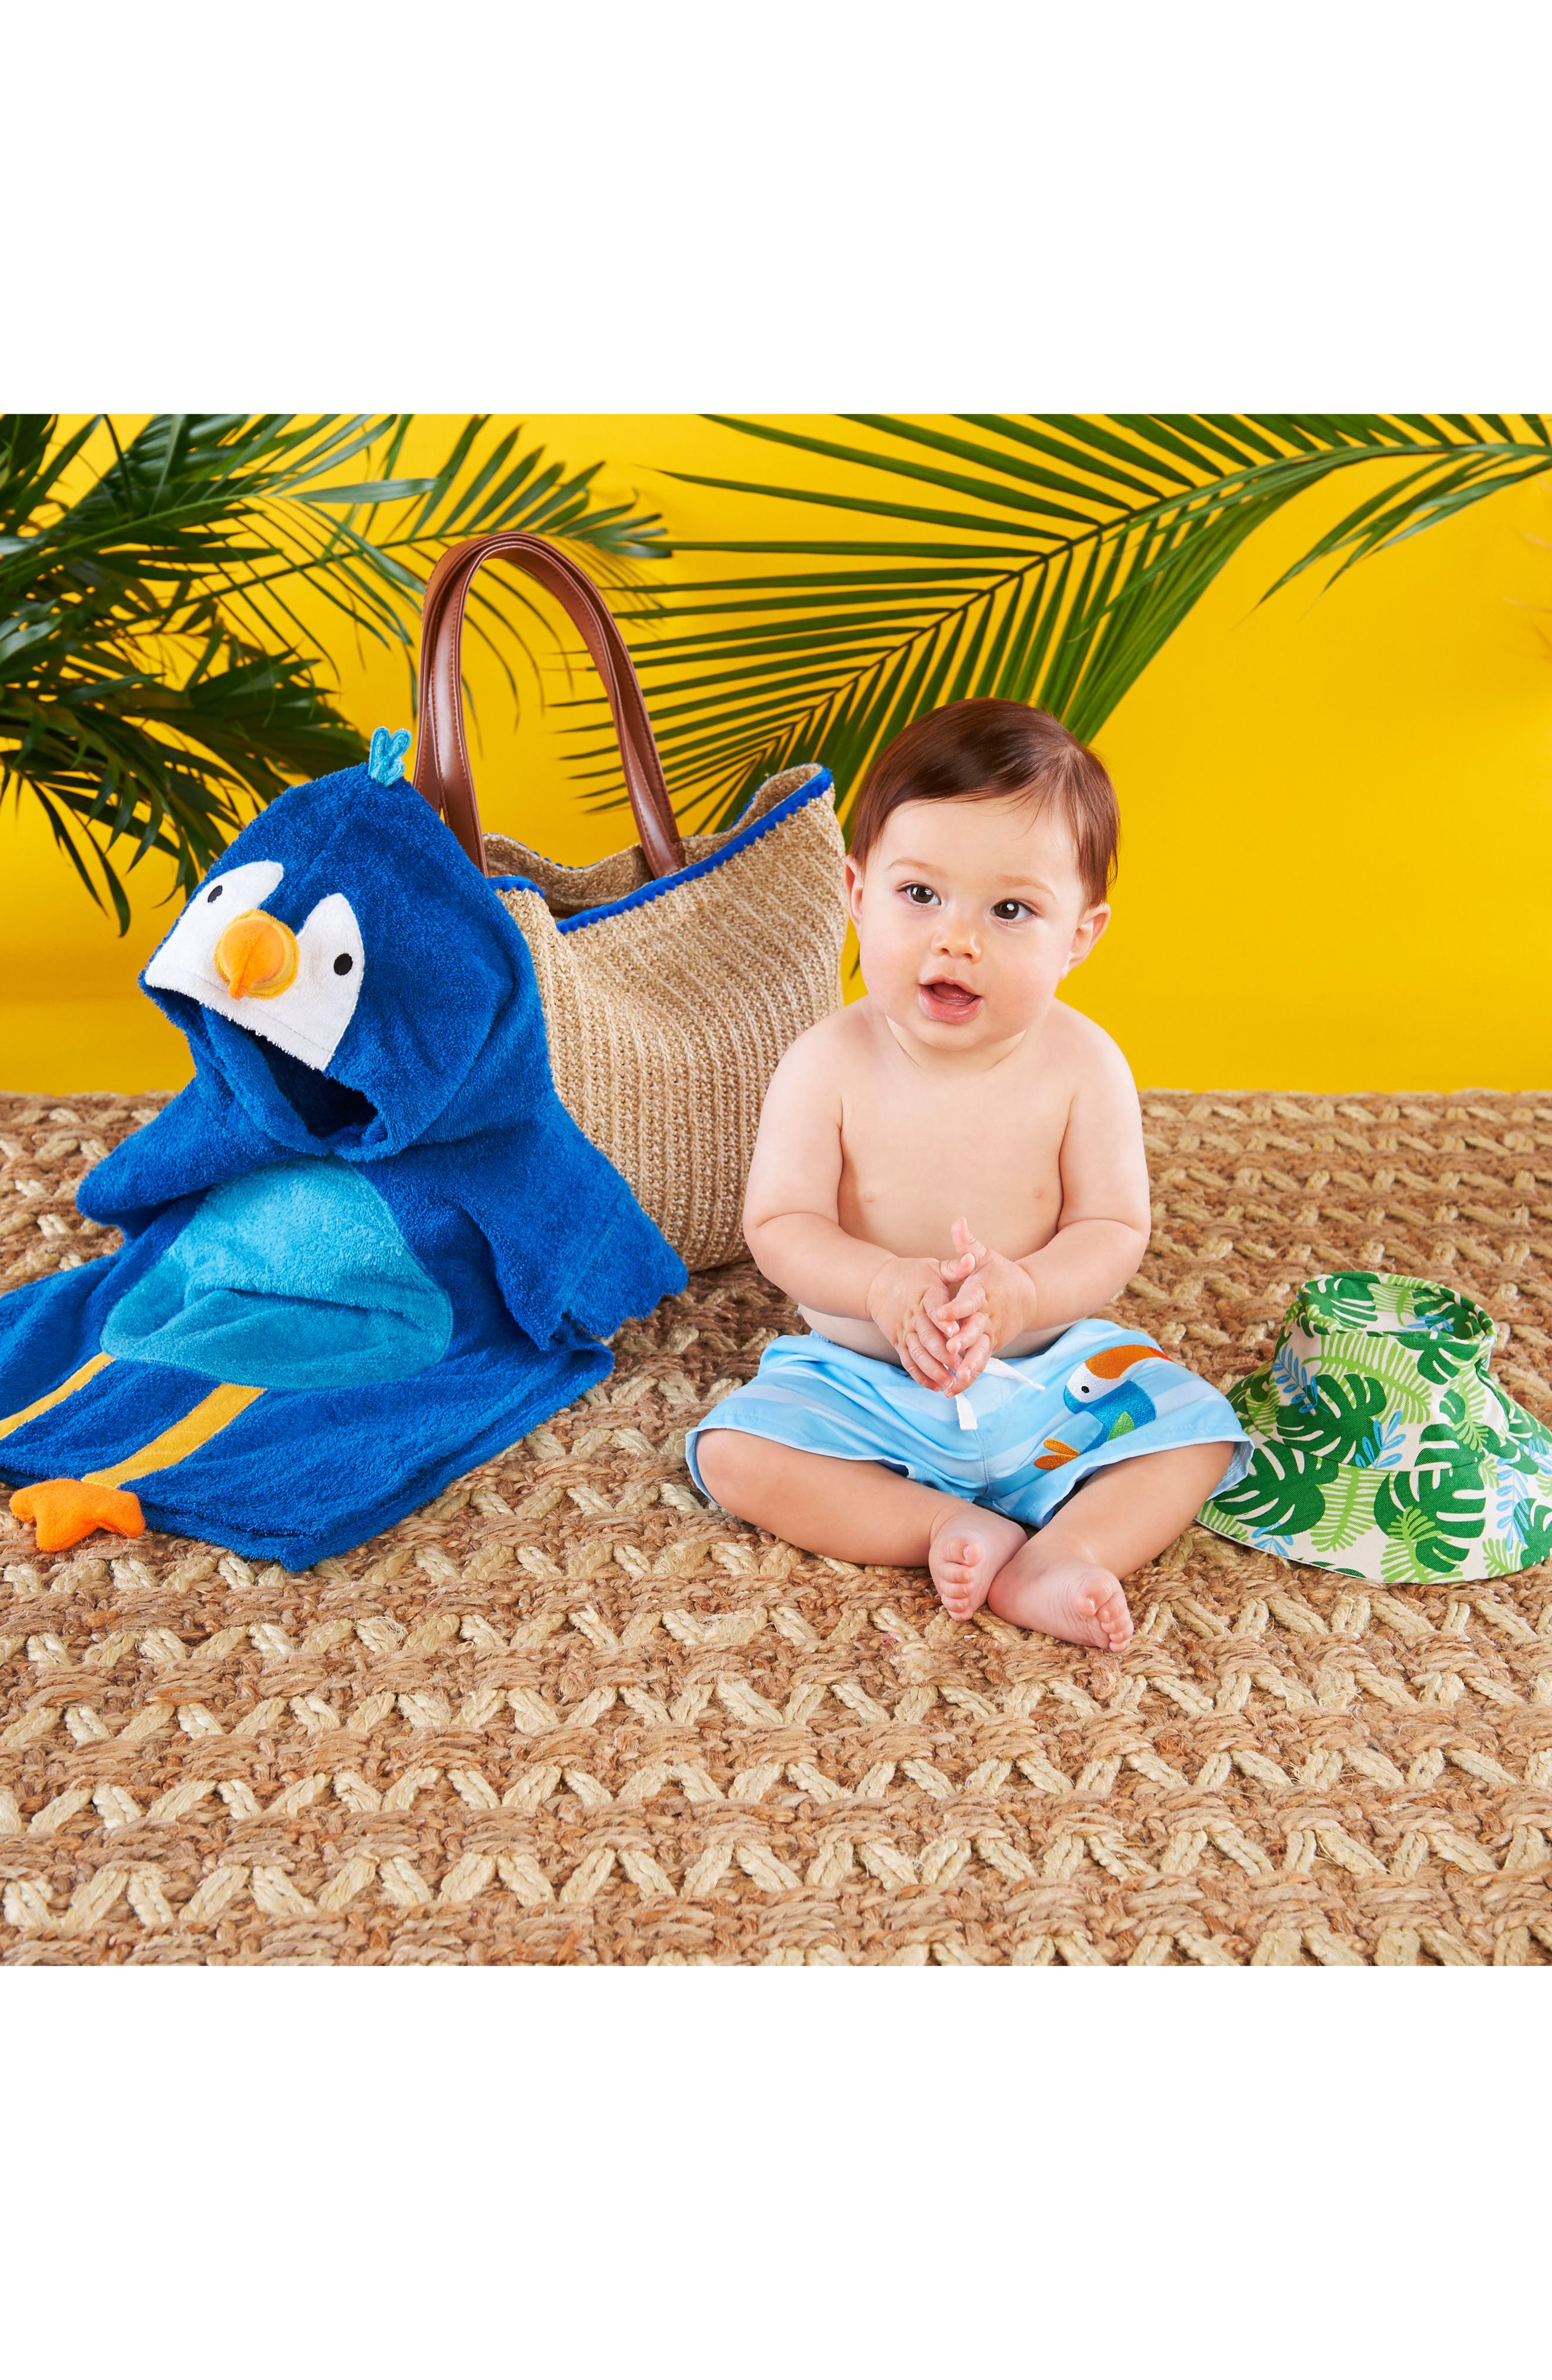 Tropical Hooded Towel, Swimsuit, Sun Hat & Tote Set,                             Alternate thumbnail 5, color,                             BLUE/ GREY/ WHITE/ BROWN